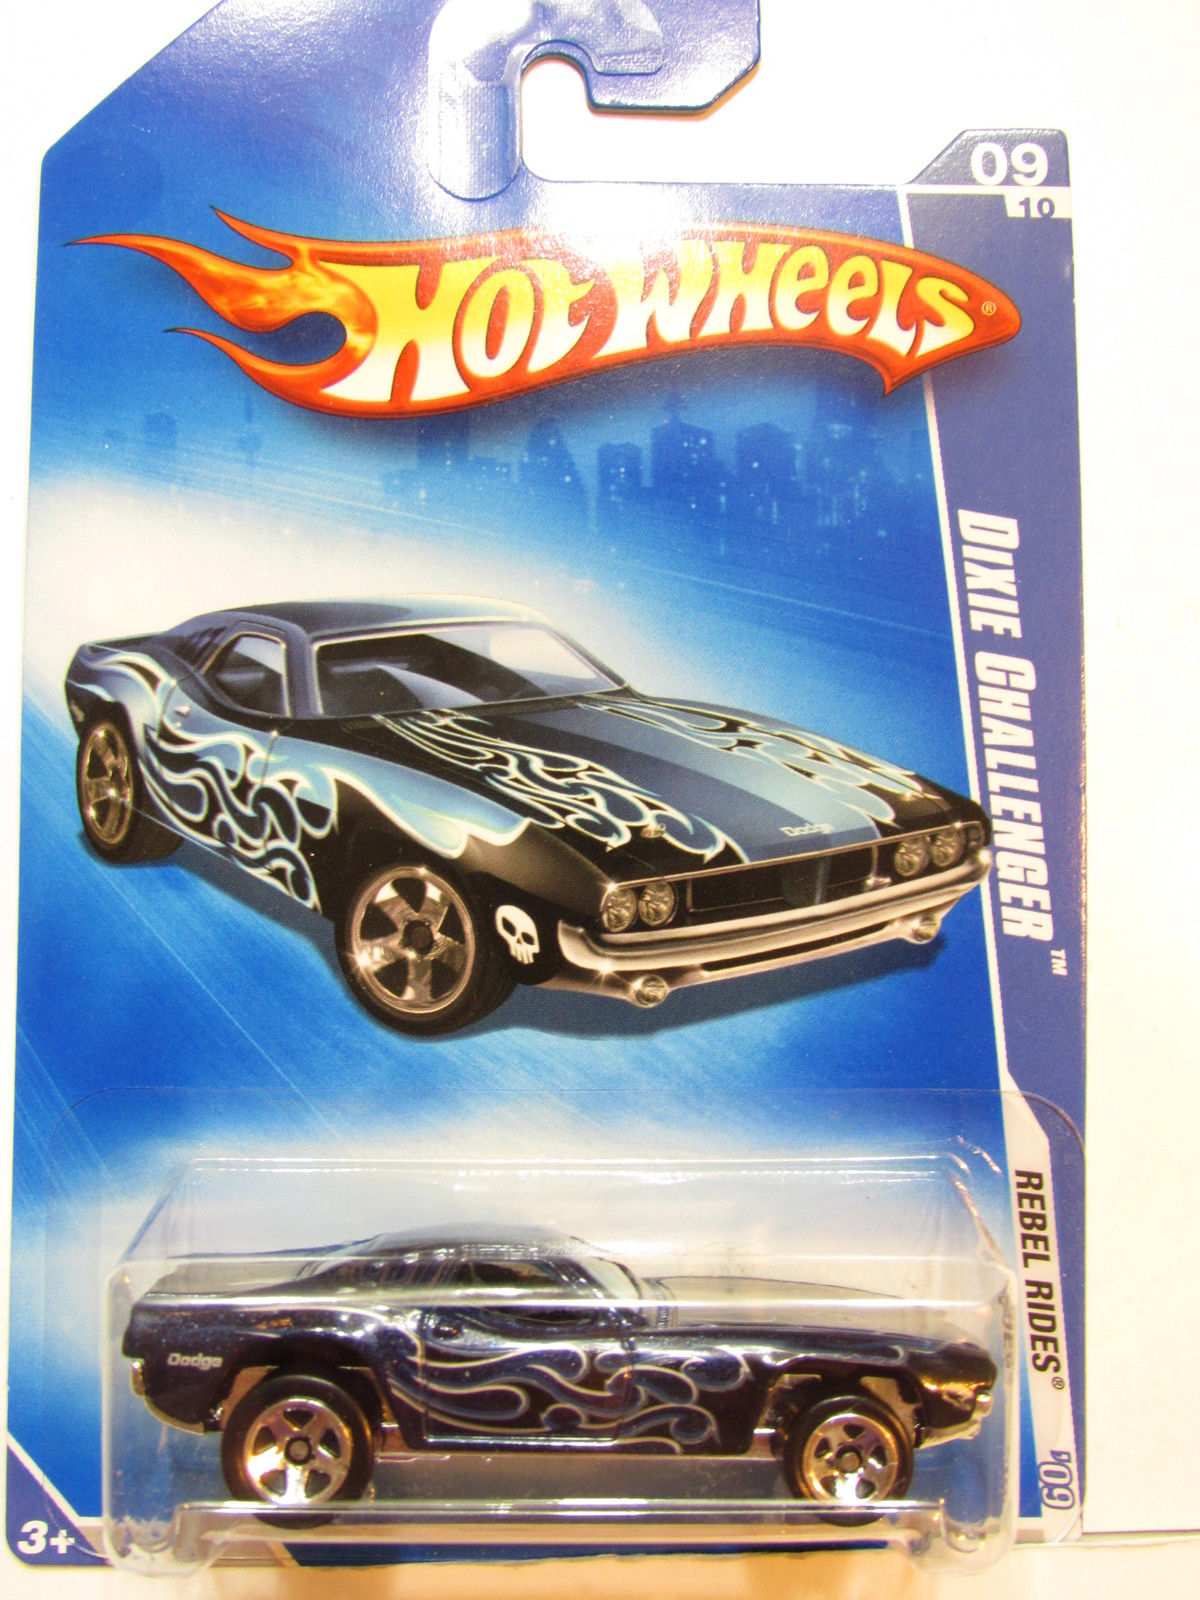 HOT WHEELS 2009 REBEL RIDES DIXIE CHALLENGER #09/10 BLUE